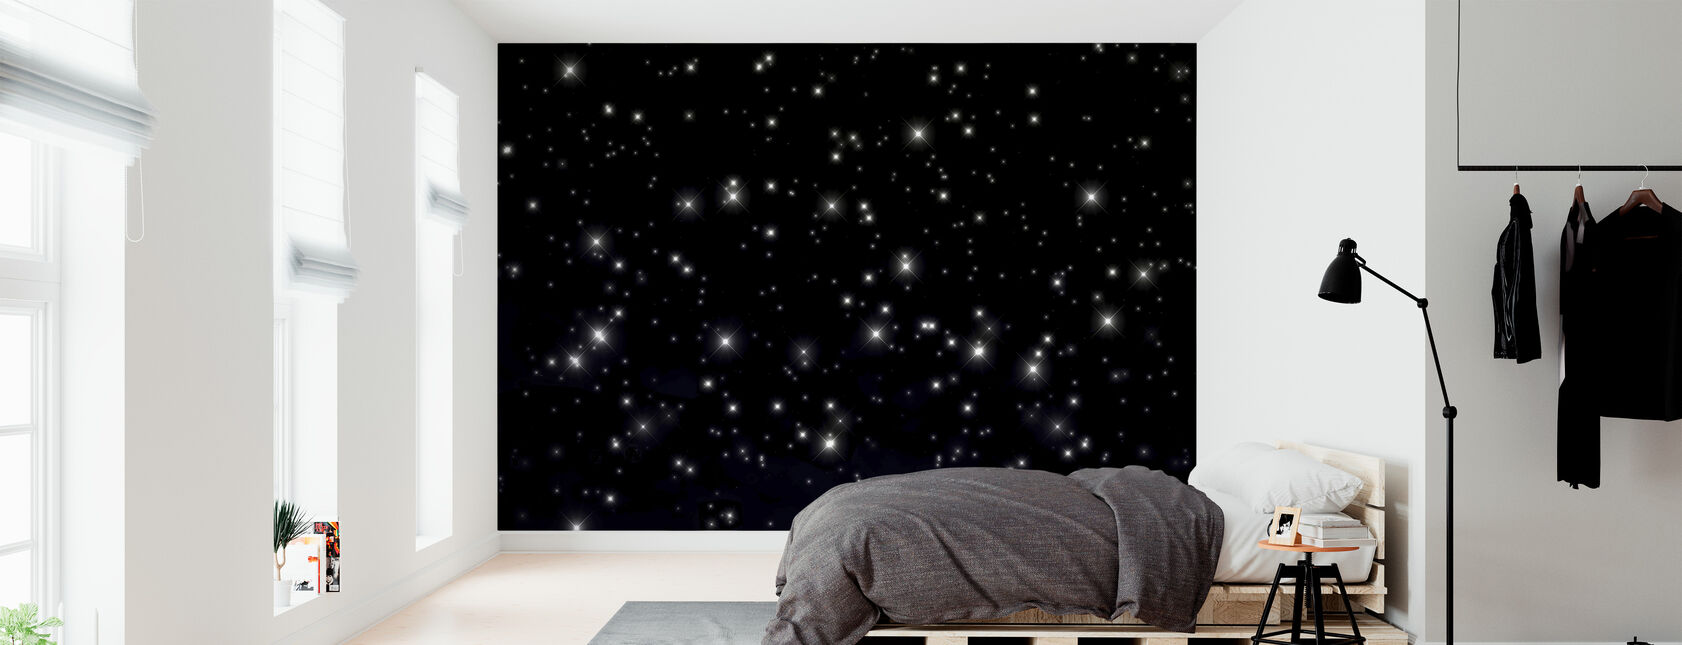 Starry Space - Wallpaper - Bedroom